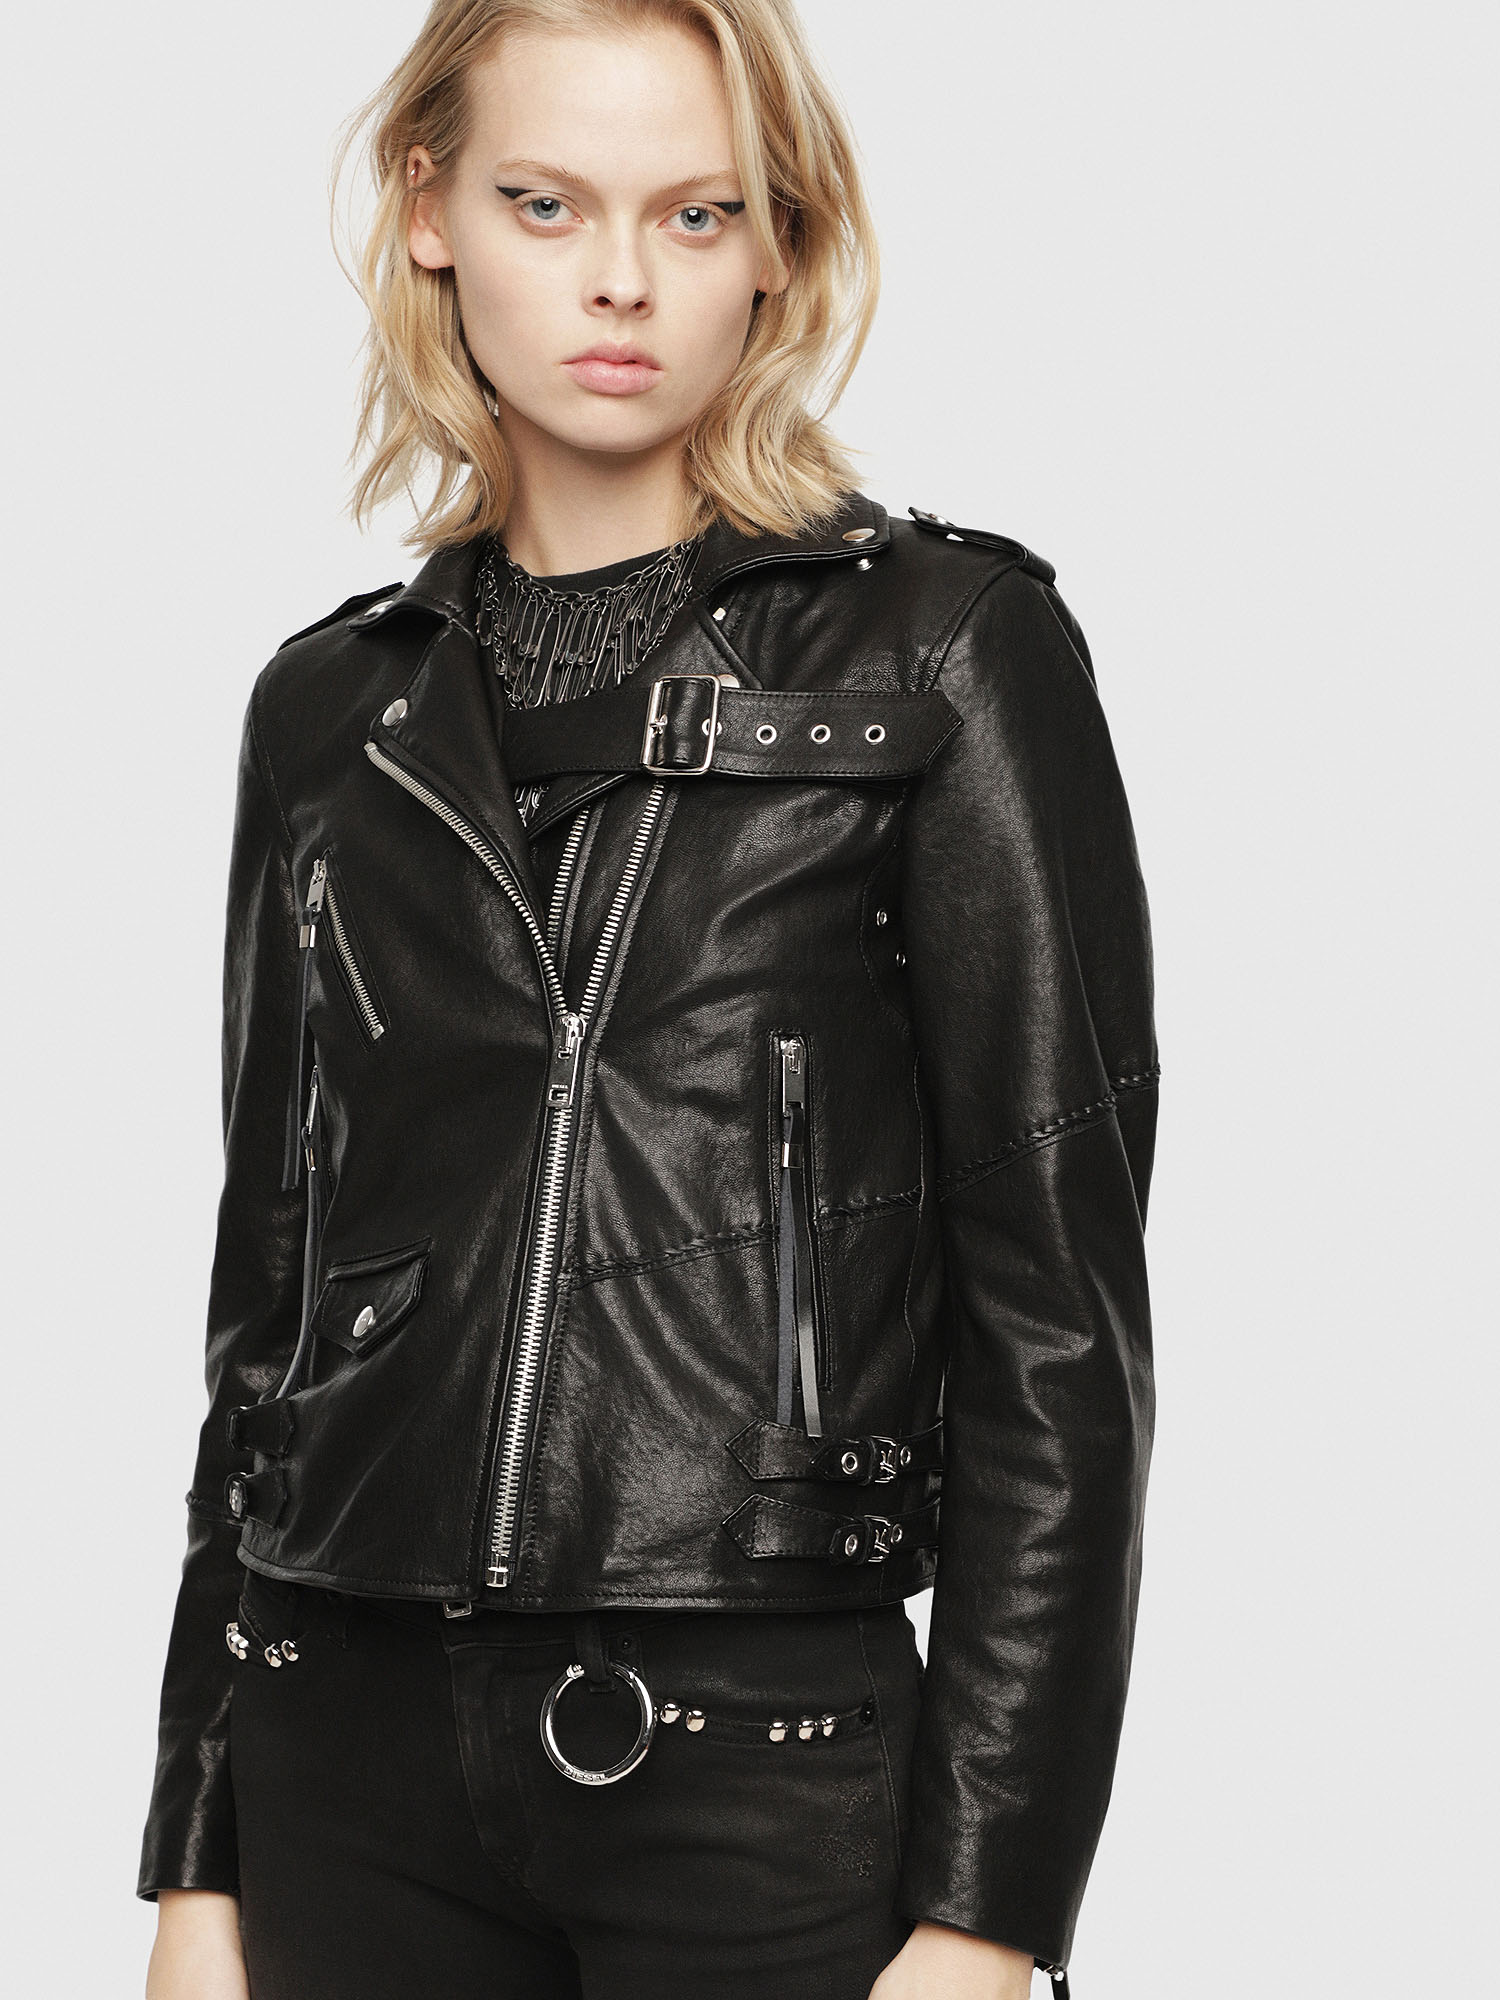 Diesel - SE-LENE,  - Leather jackets - Image 1